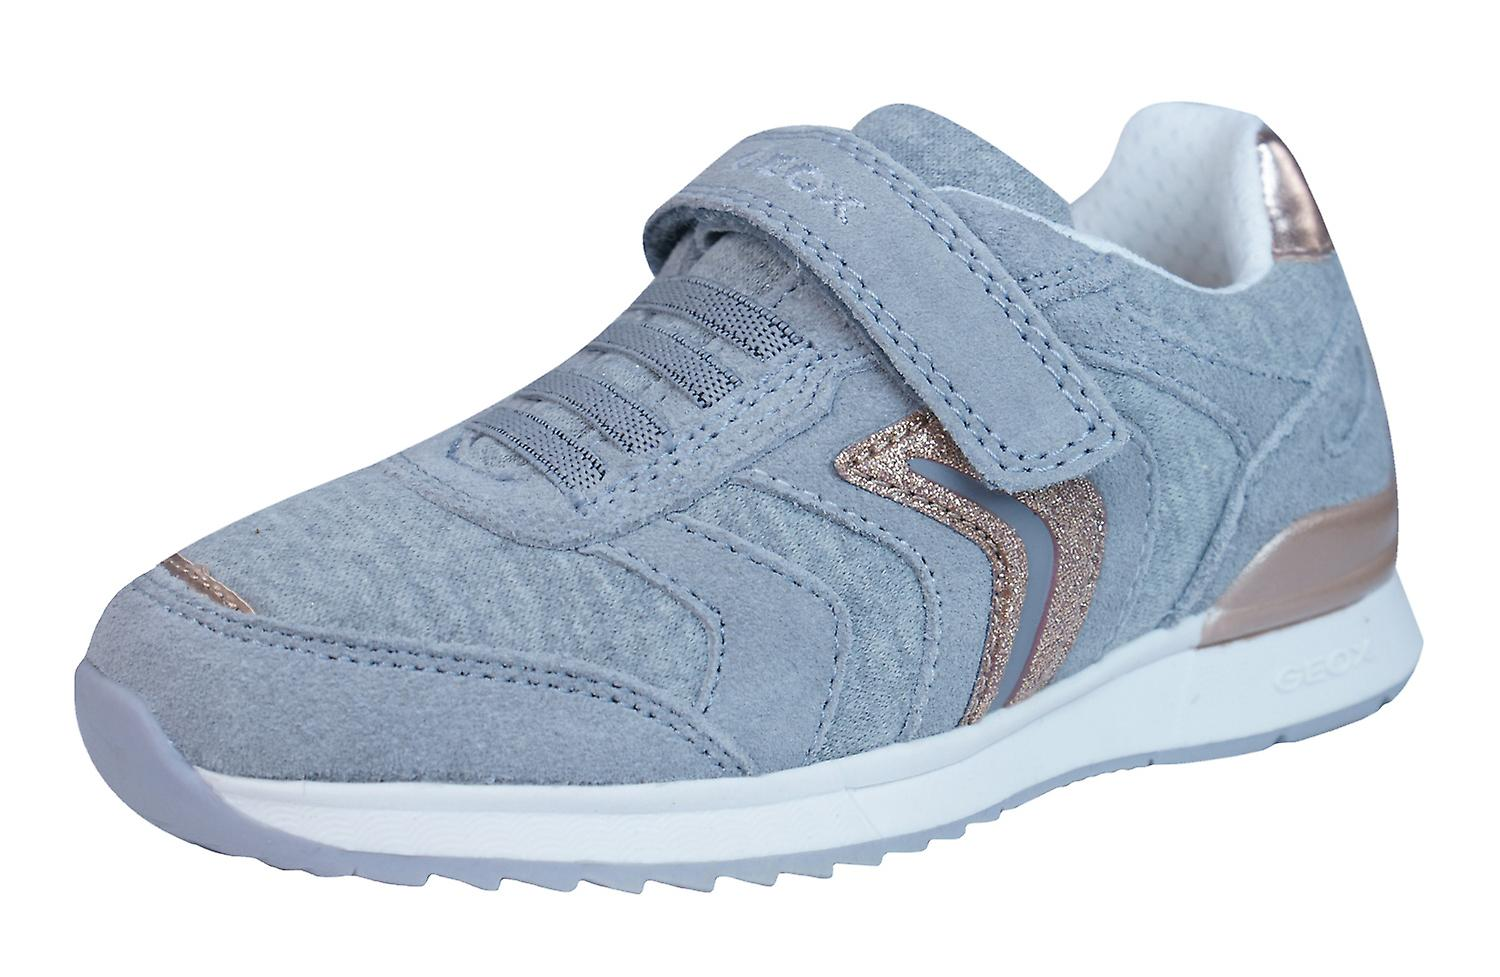 Geox J Maisie G - Girls Trainers / Shoes - G Grey a63742